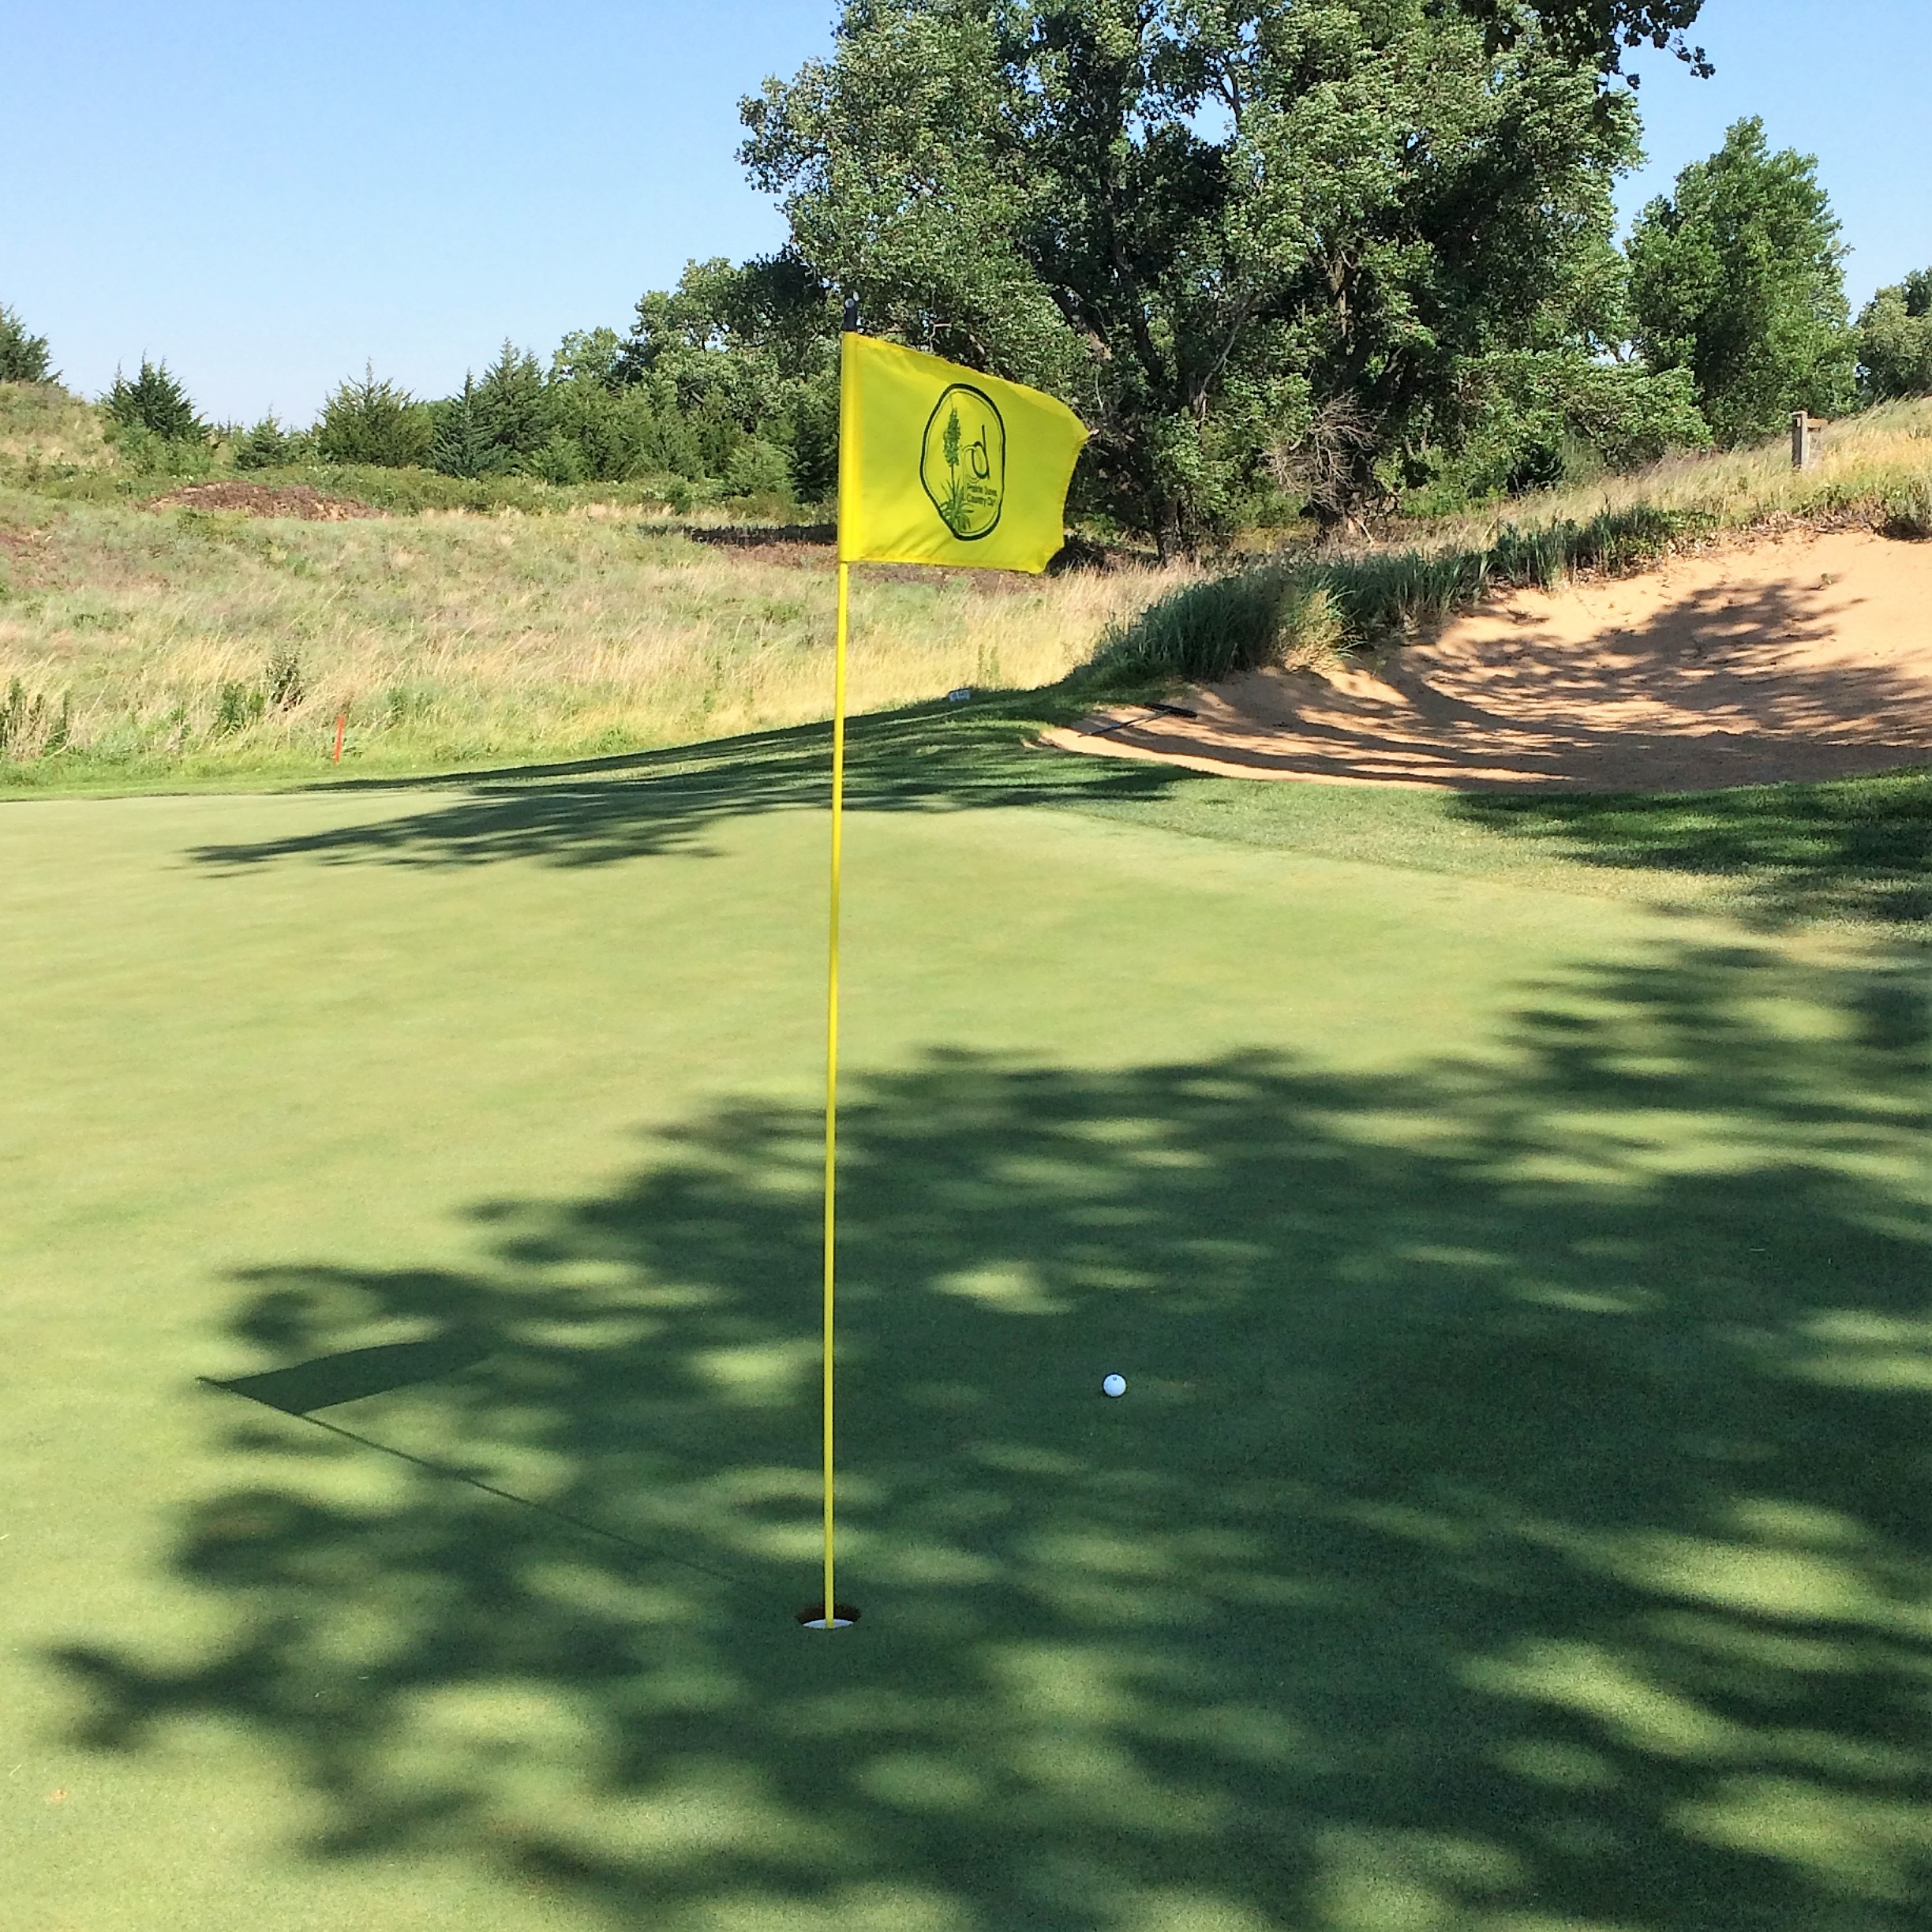 My pitch shot after finding my approach shot to the 11th hole, in the rough at the back of the green